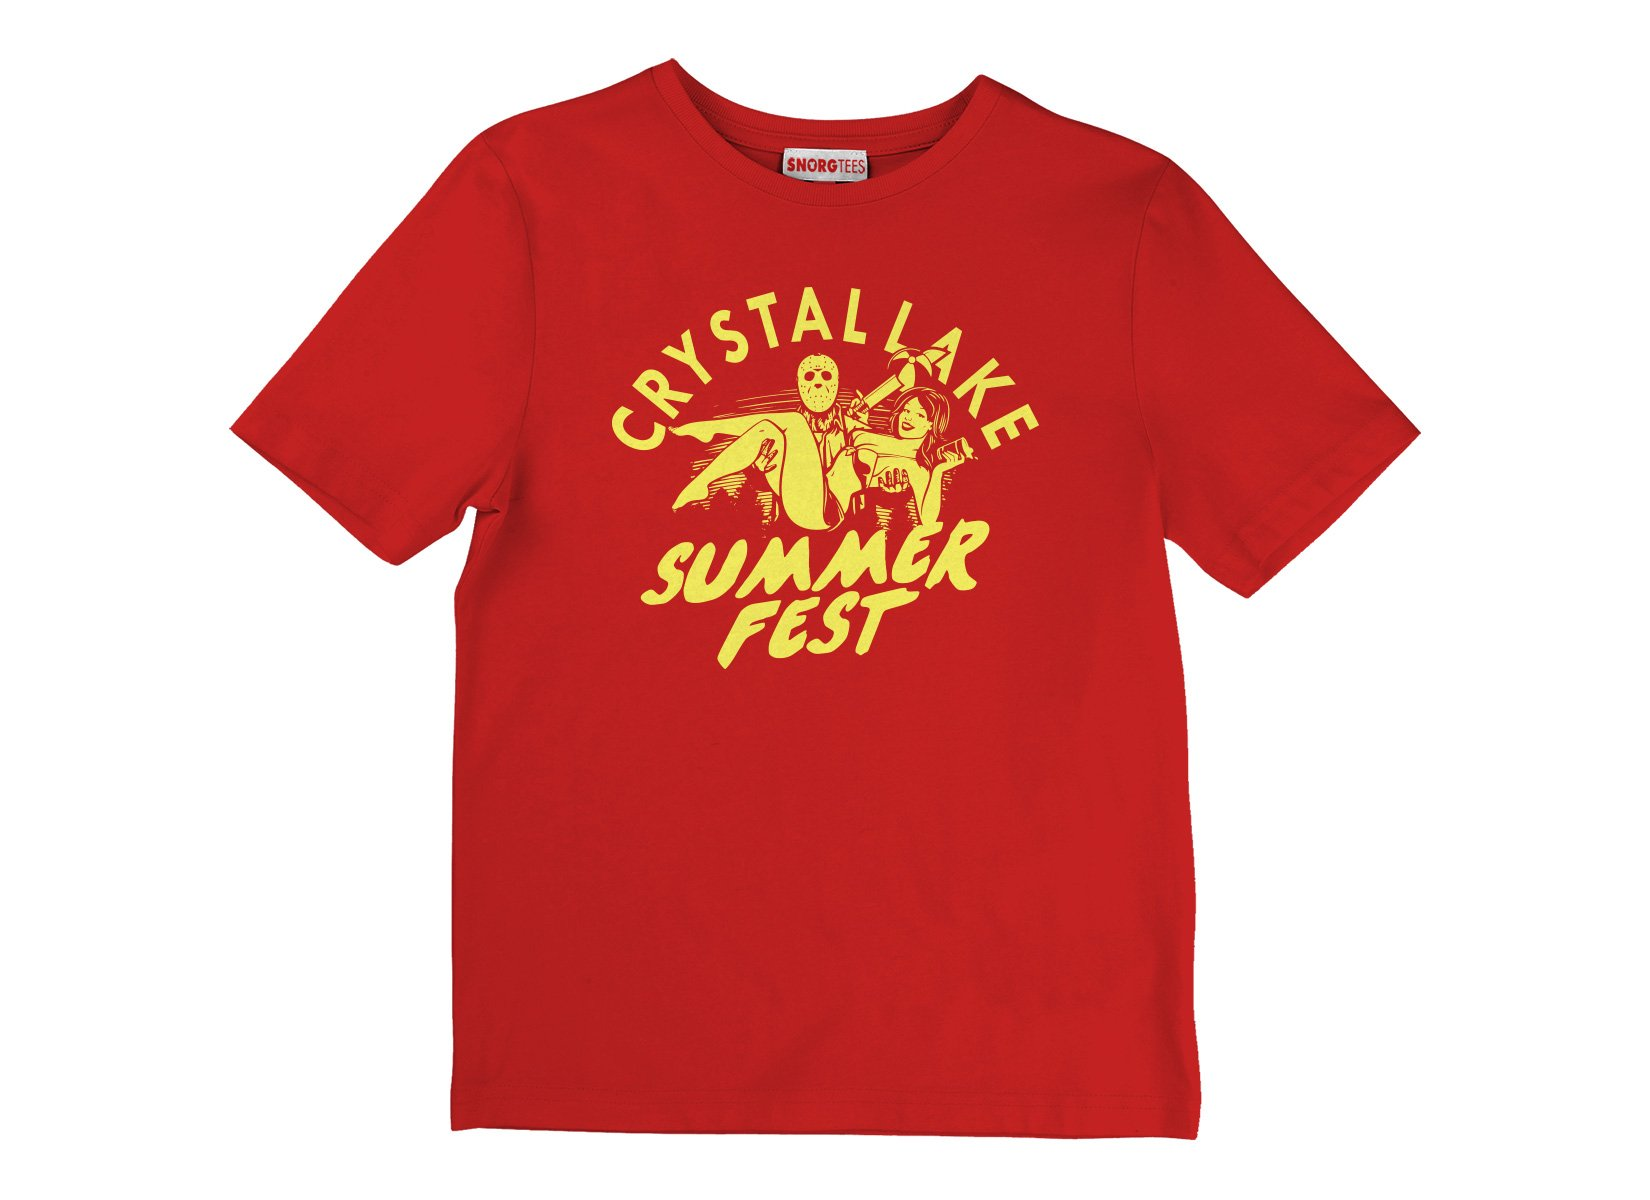 Crystal Lake Summer Fest on Kids T-Shirt